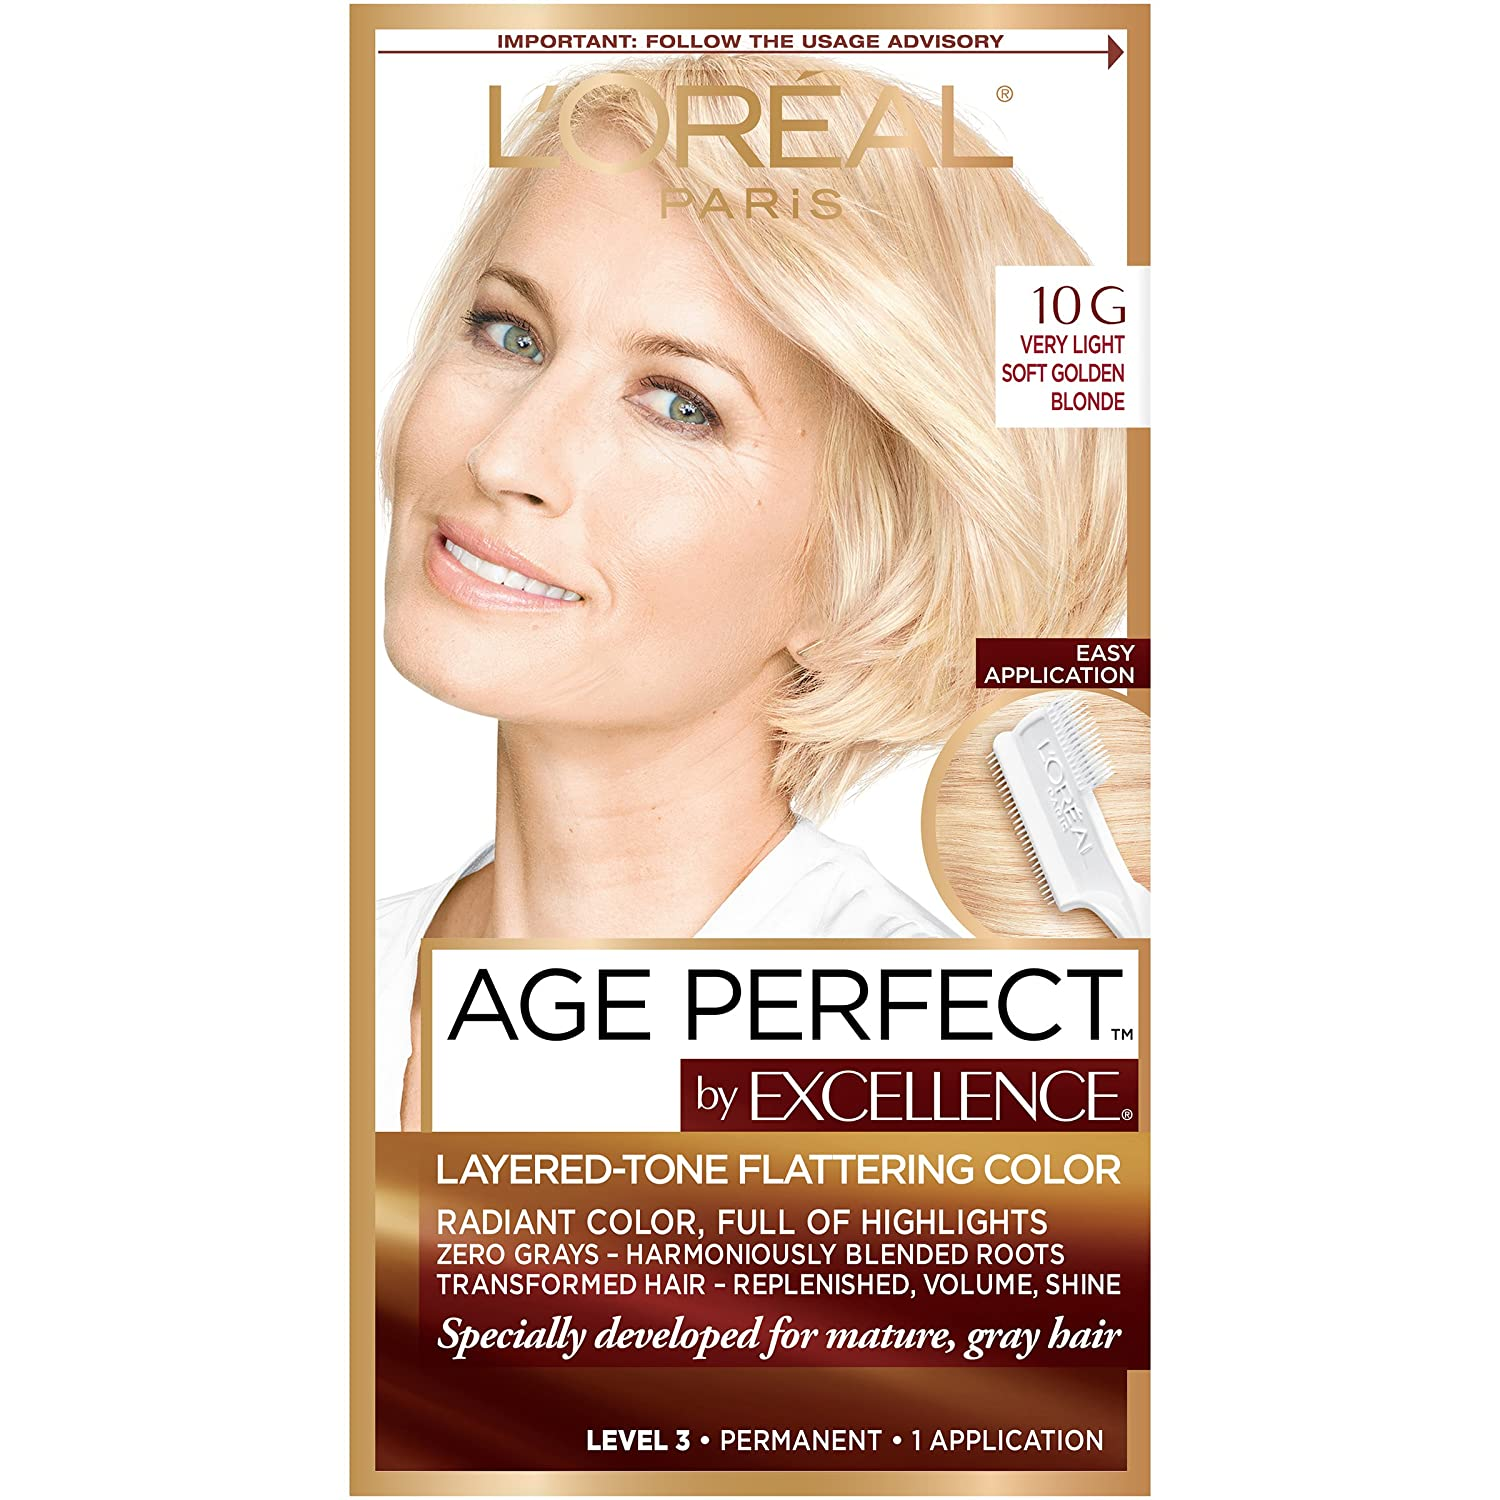 LOreal Paris ExcellenceAge Perfect Layered Tone Flattering Color